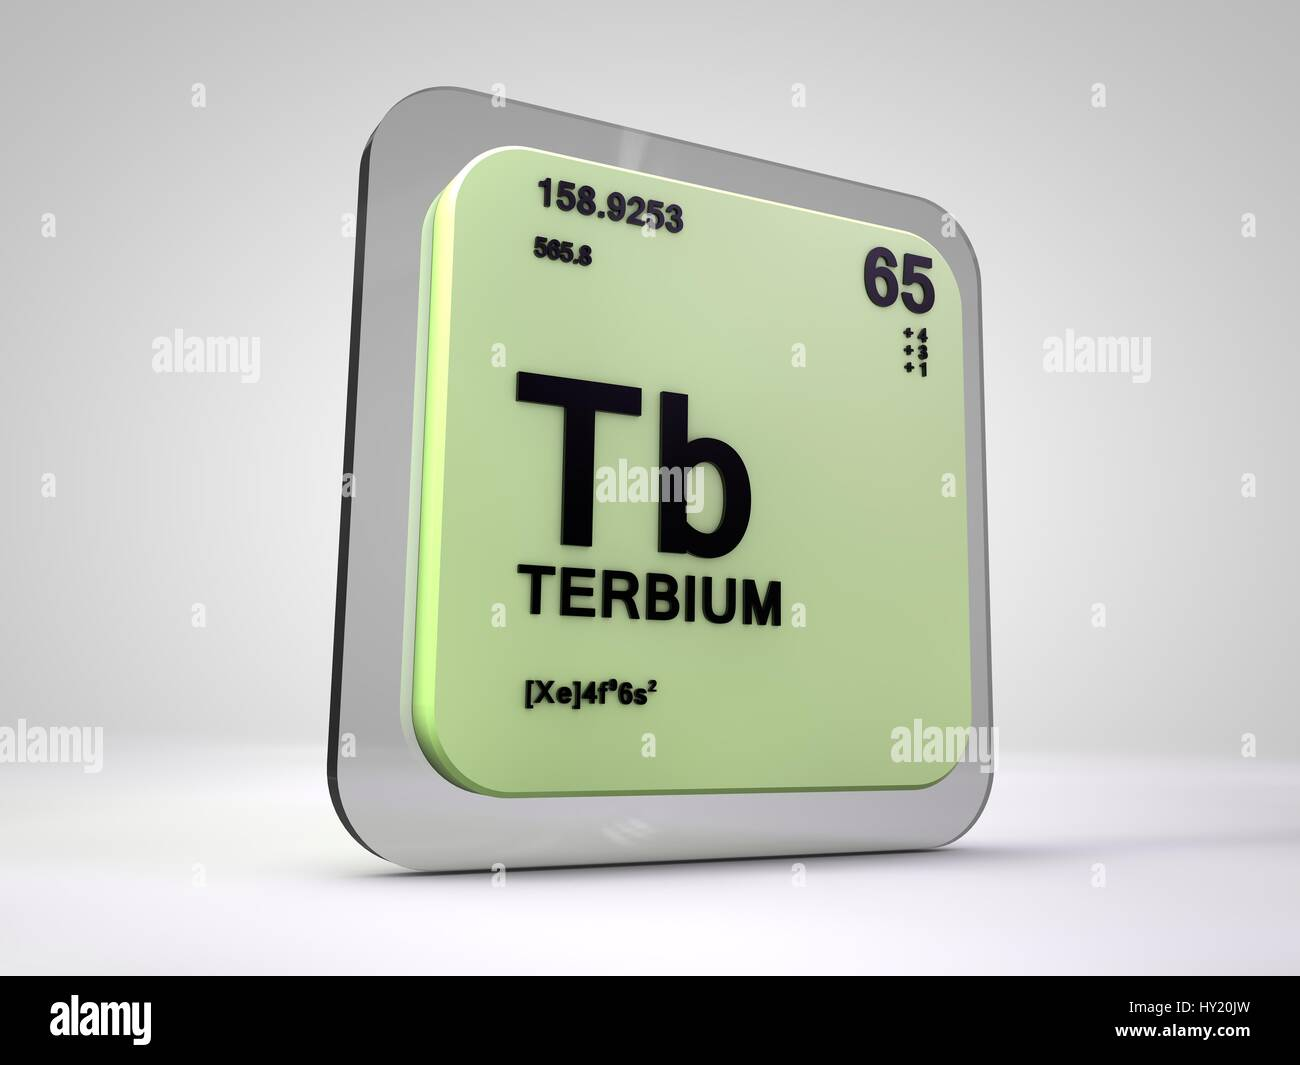 Tb periodic table image collections periodic table images terbium tb chemical element periodic table 3d render stock stock photo terbium tb chemical element periodic gamestrikefo Image collections